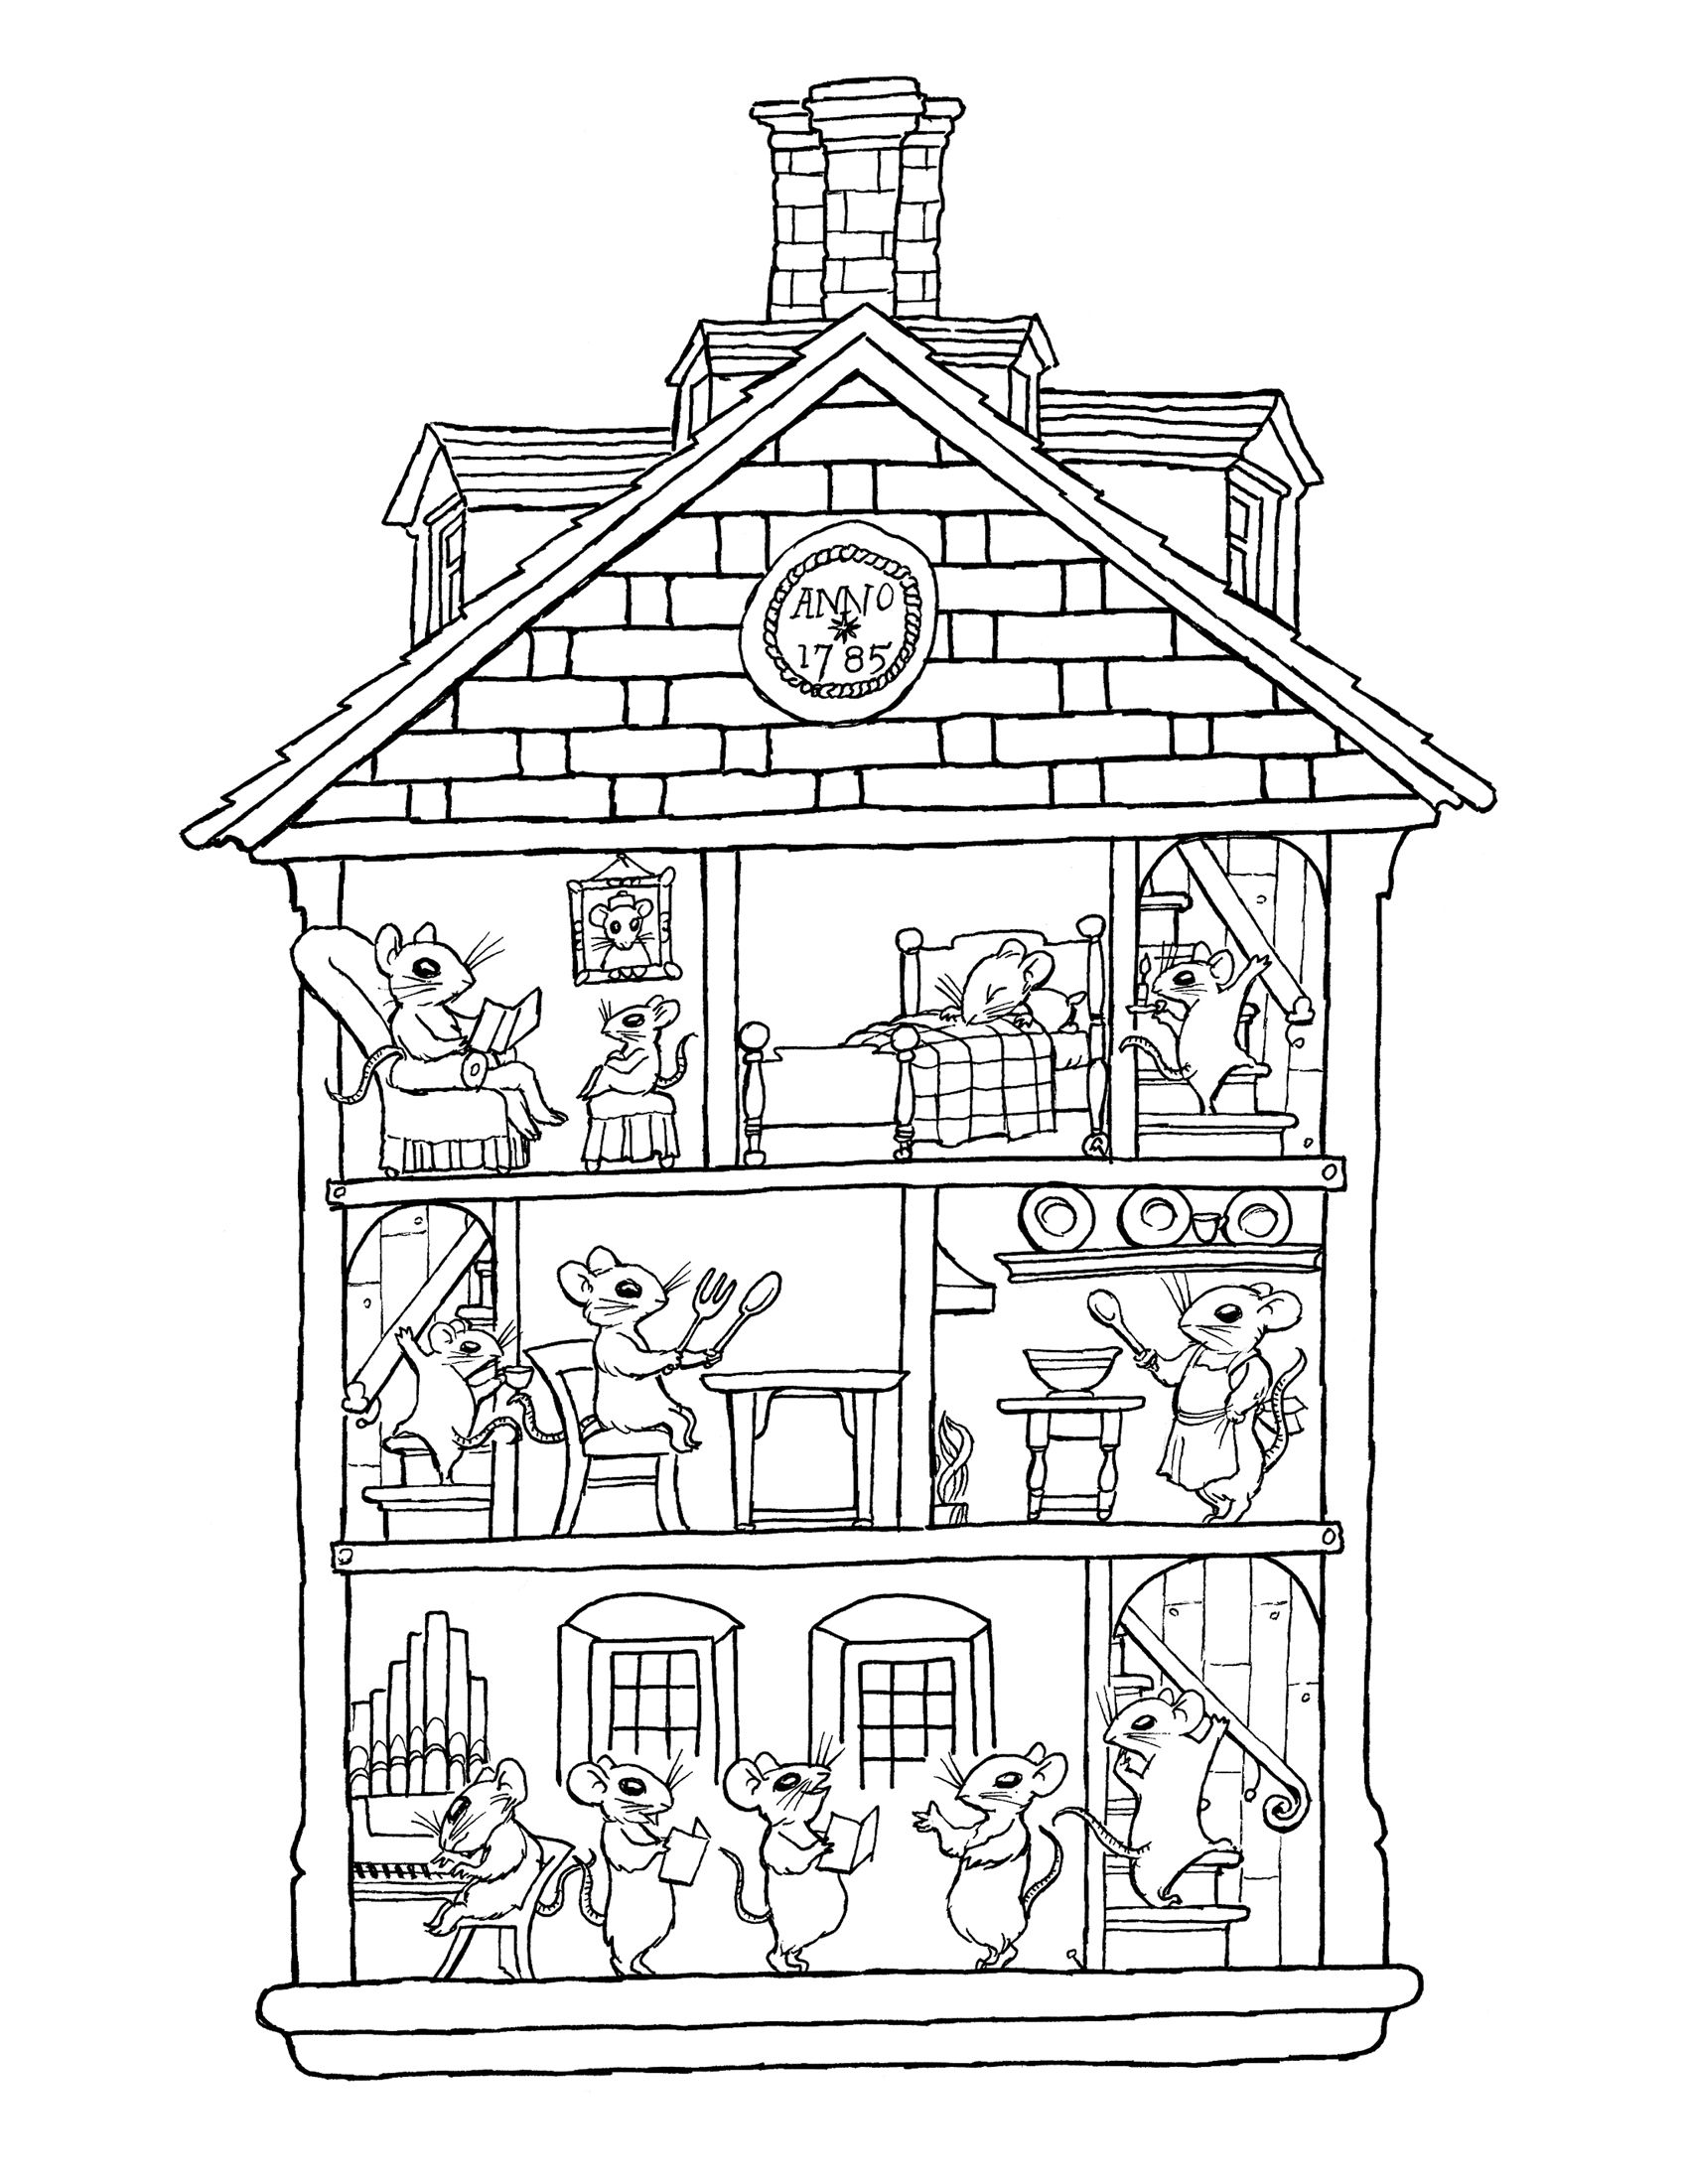 Houses and homes coloring pages for preschool kindergarten and elementary school children to print and